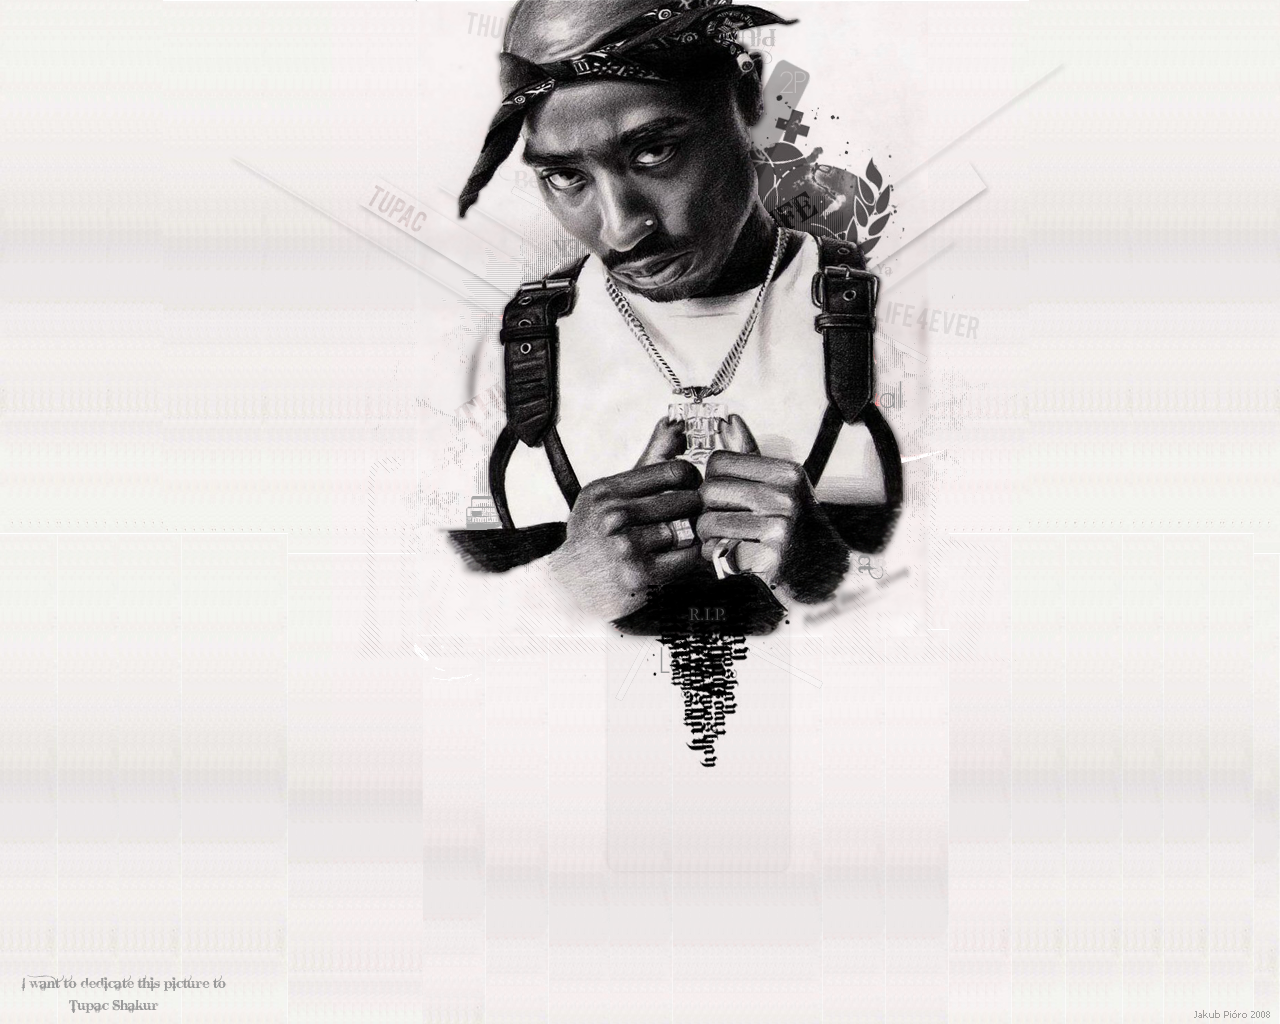 Tupac Wallpaper for My Desktop 1280x1024